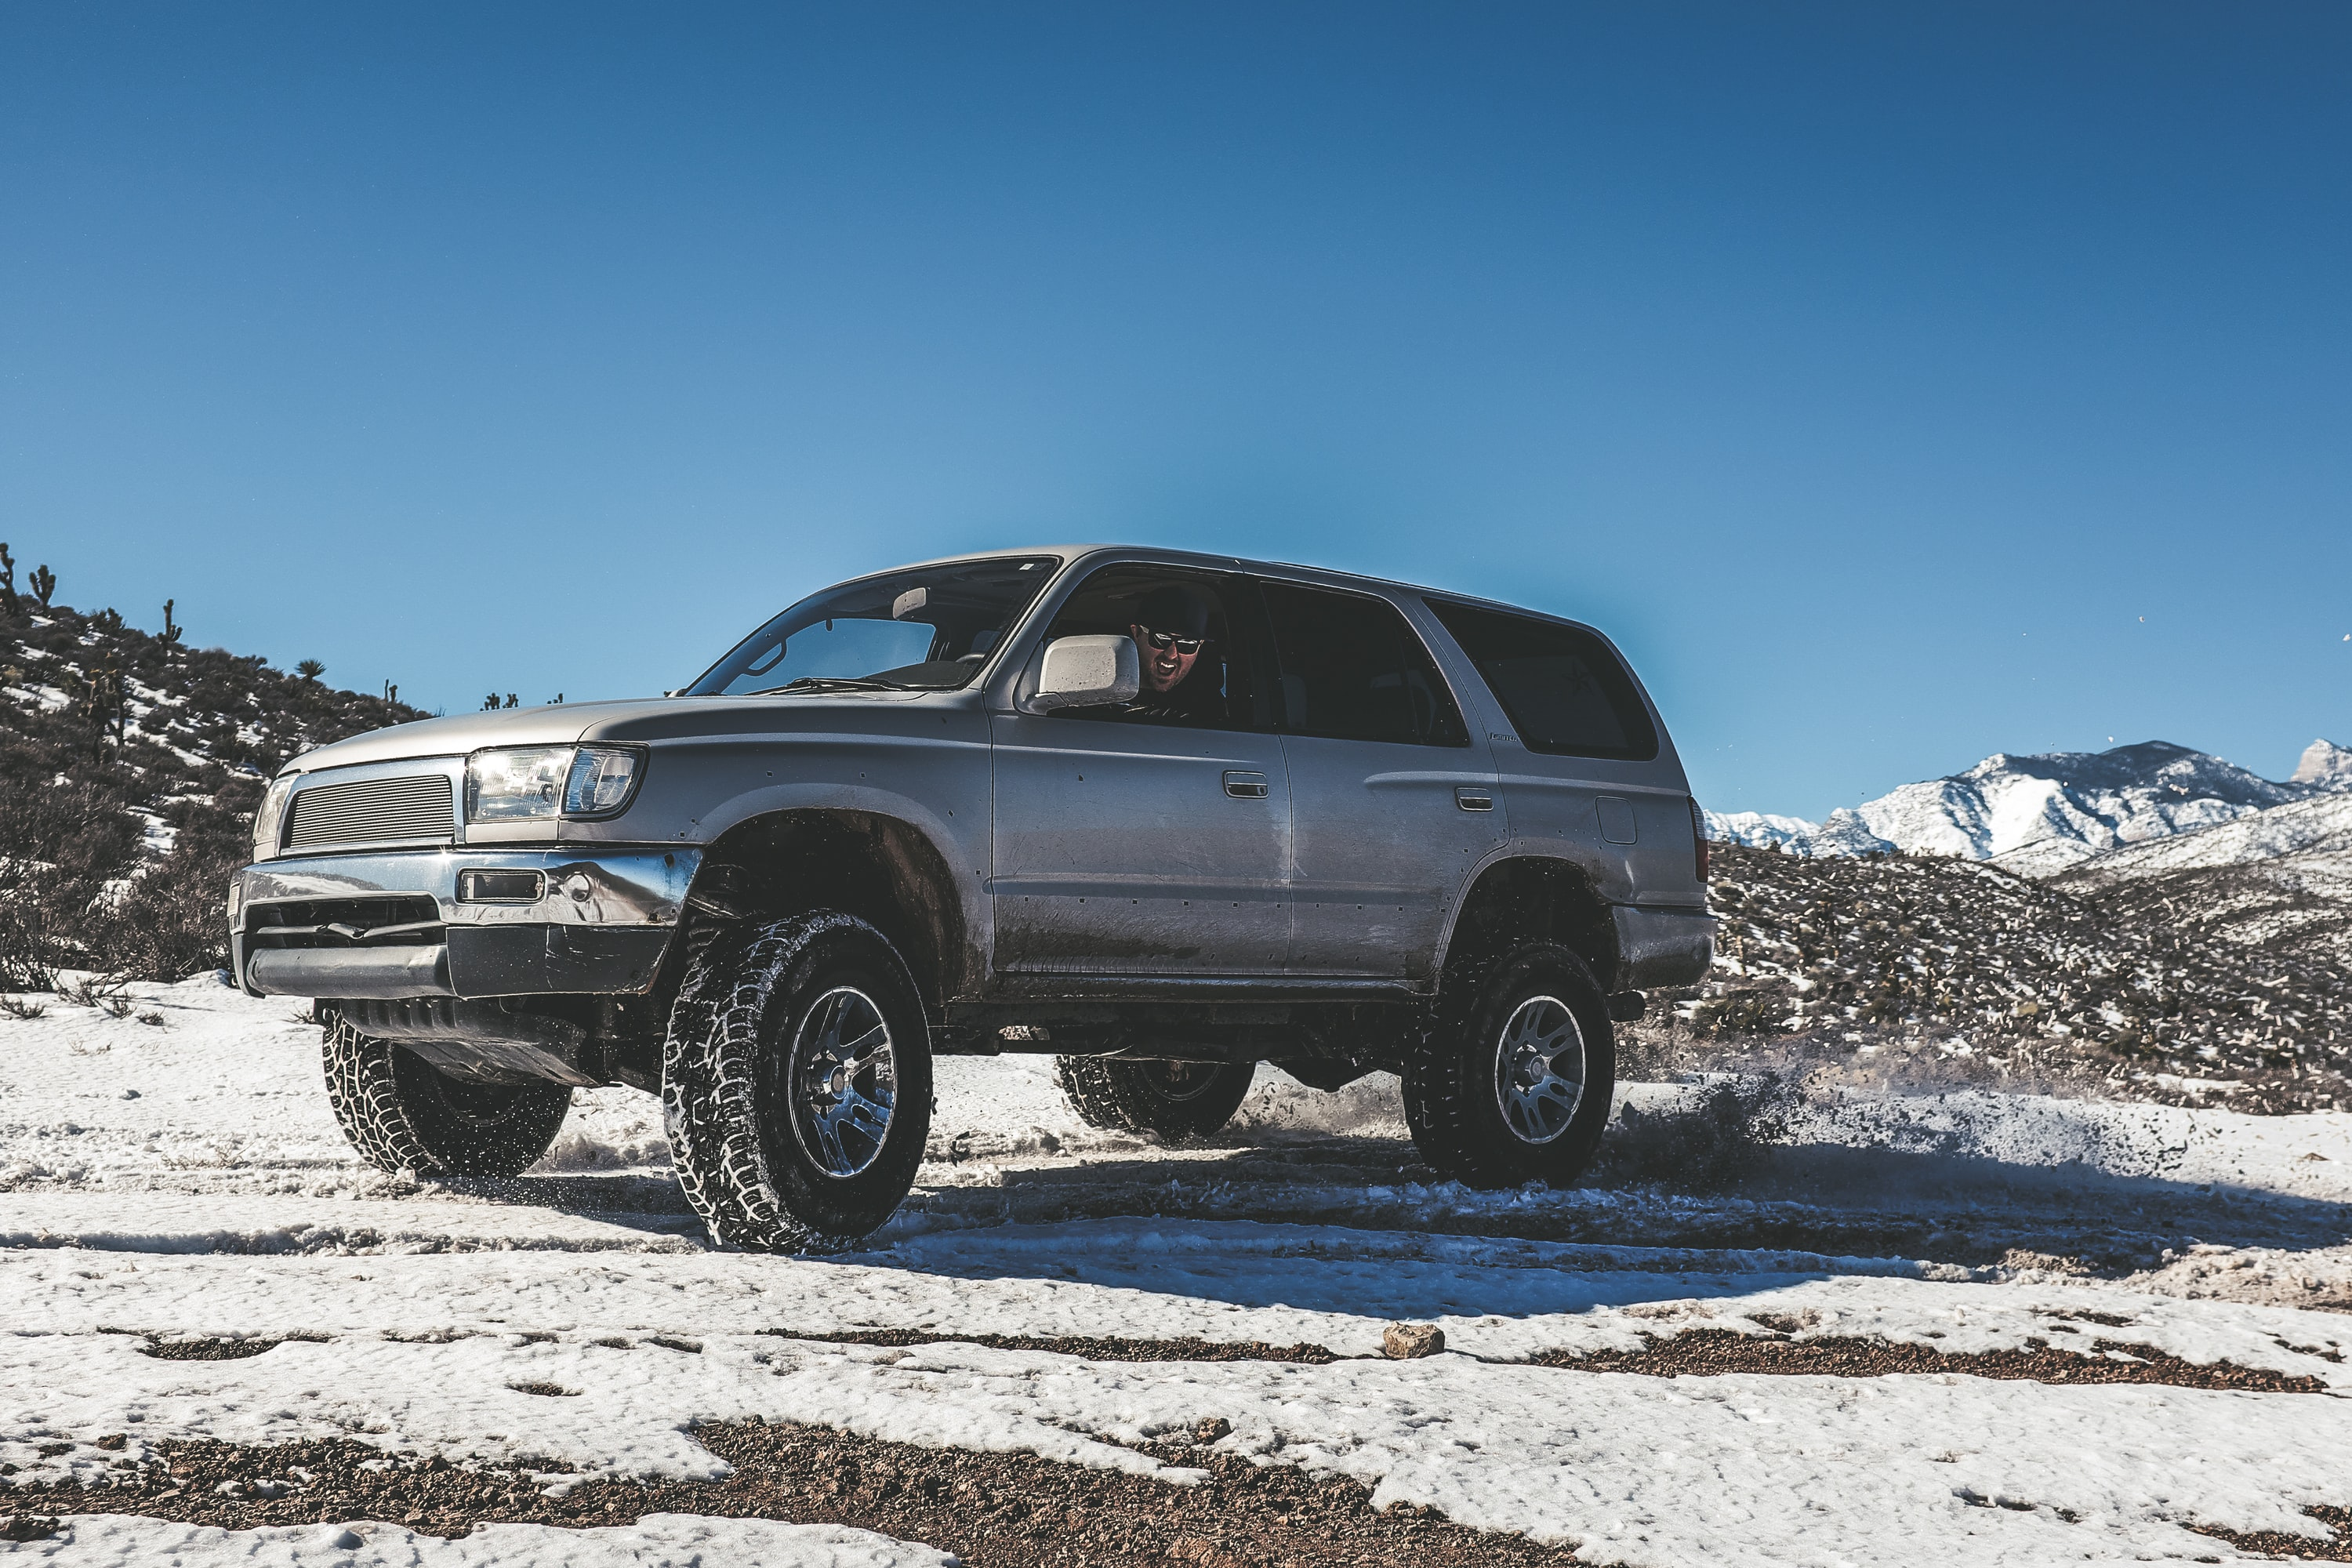 A 4x4 vehicle sitting in the snow on a hill at Mount Charleston